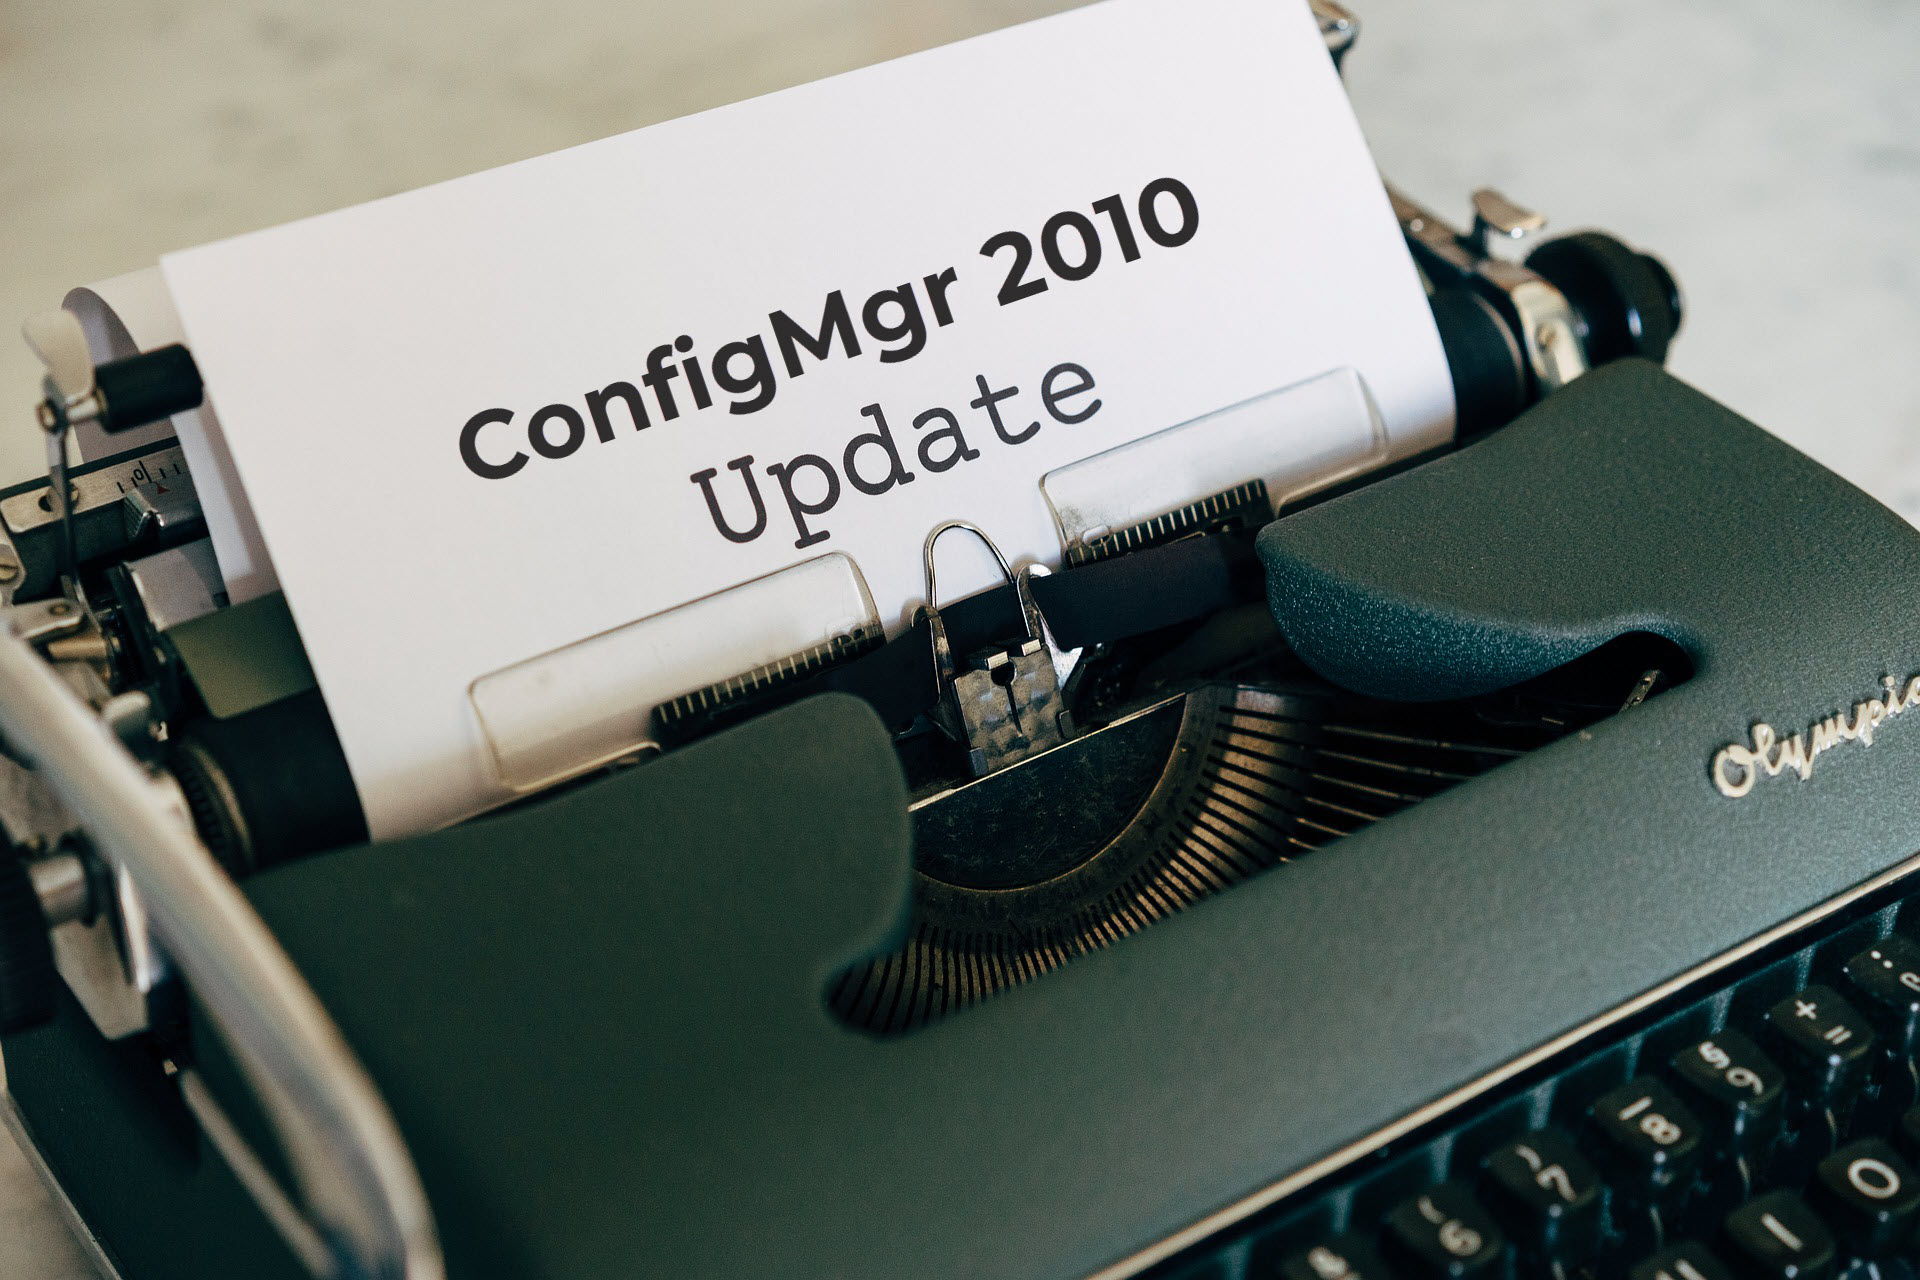 Configuration Manager 2010 Generally Available